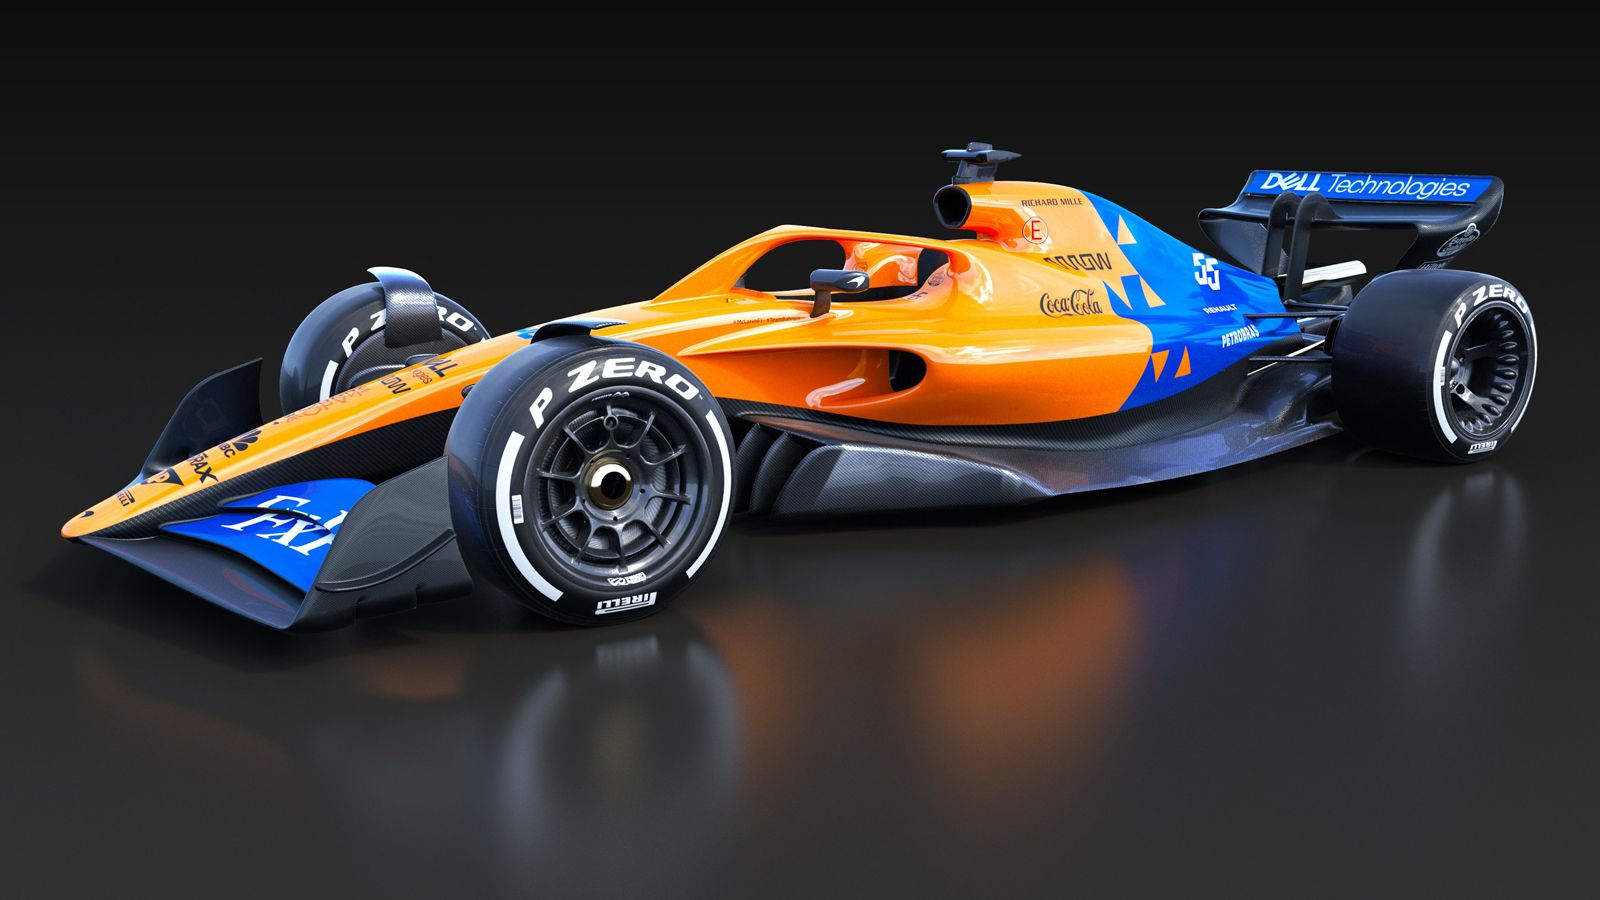 Check out the new look cars budget cap confirmed for 2021 F1 season 1600x900